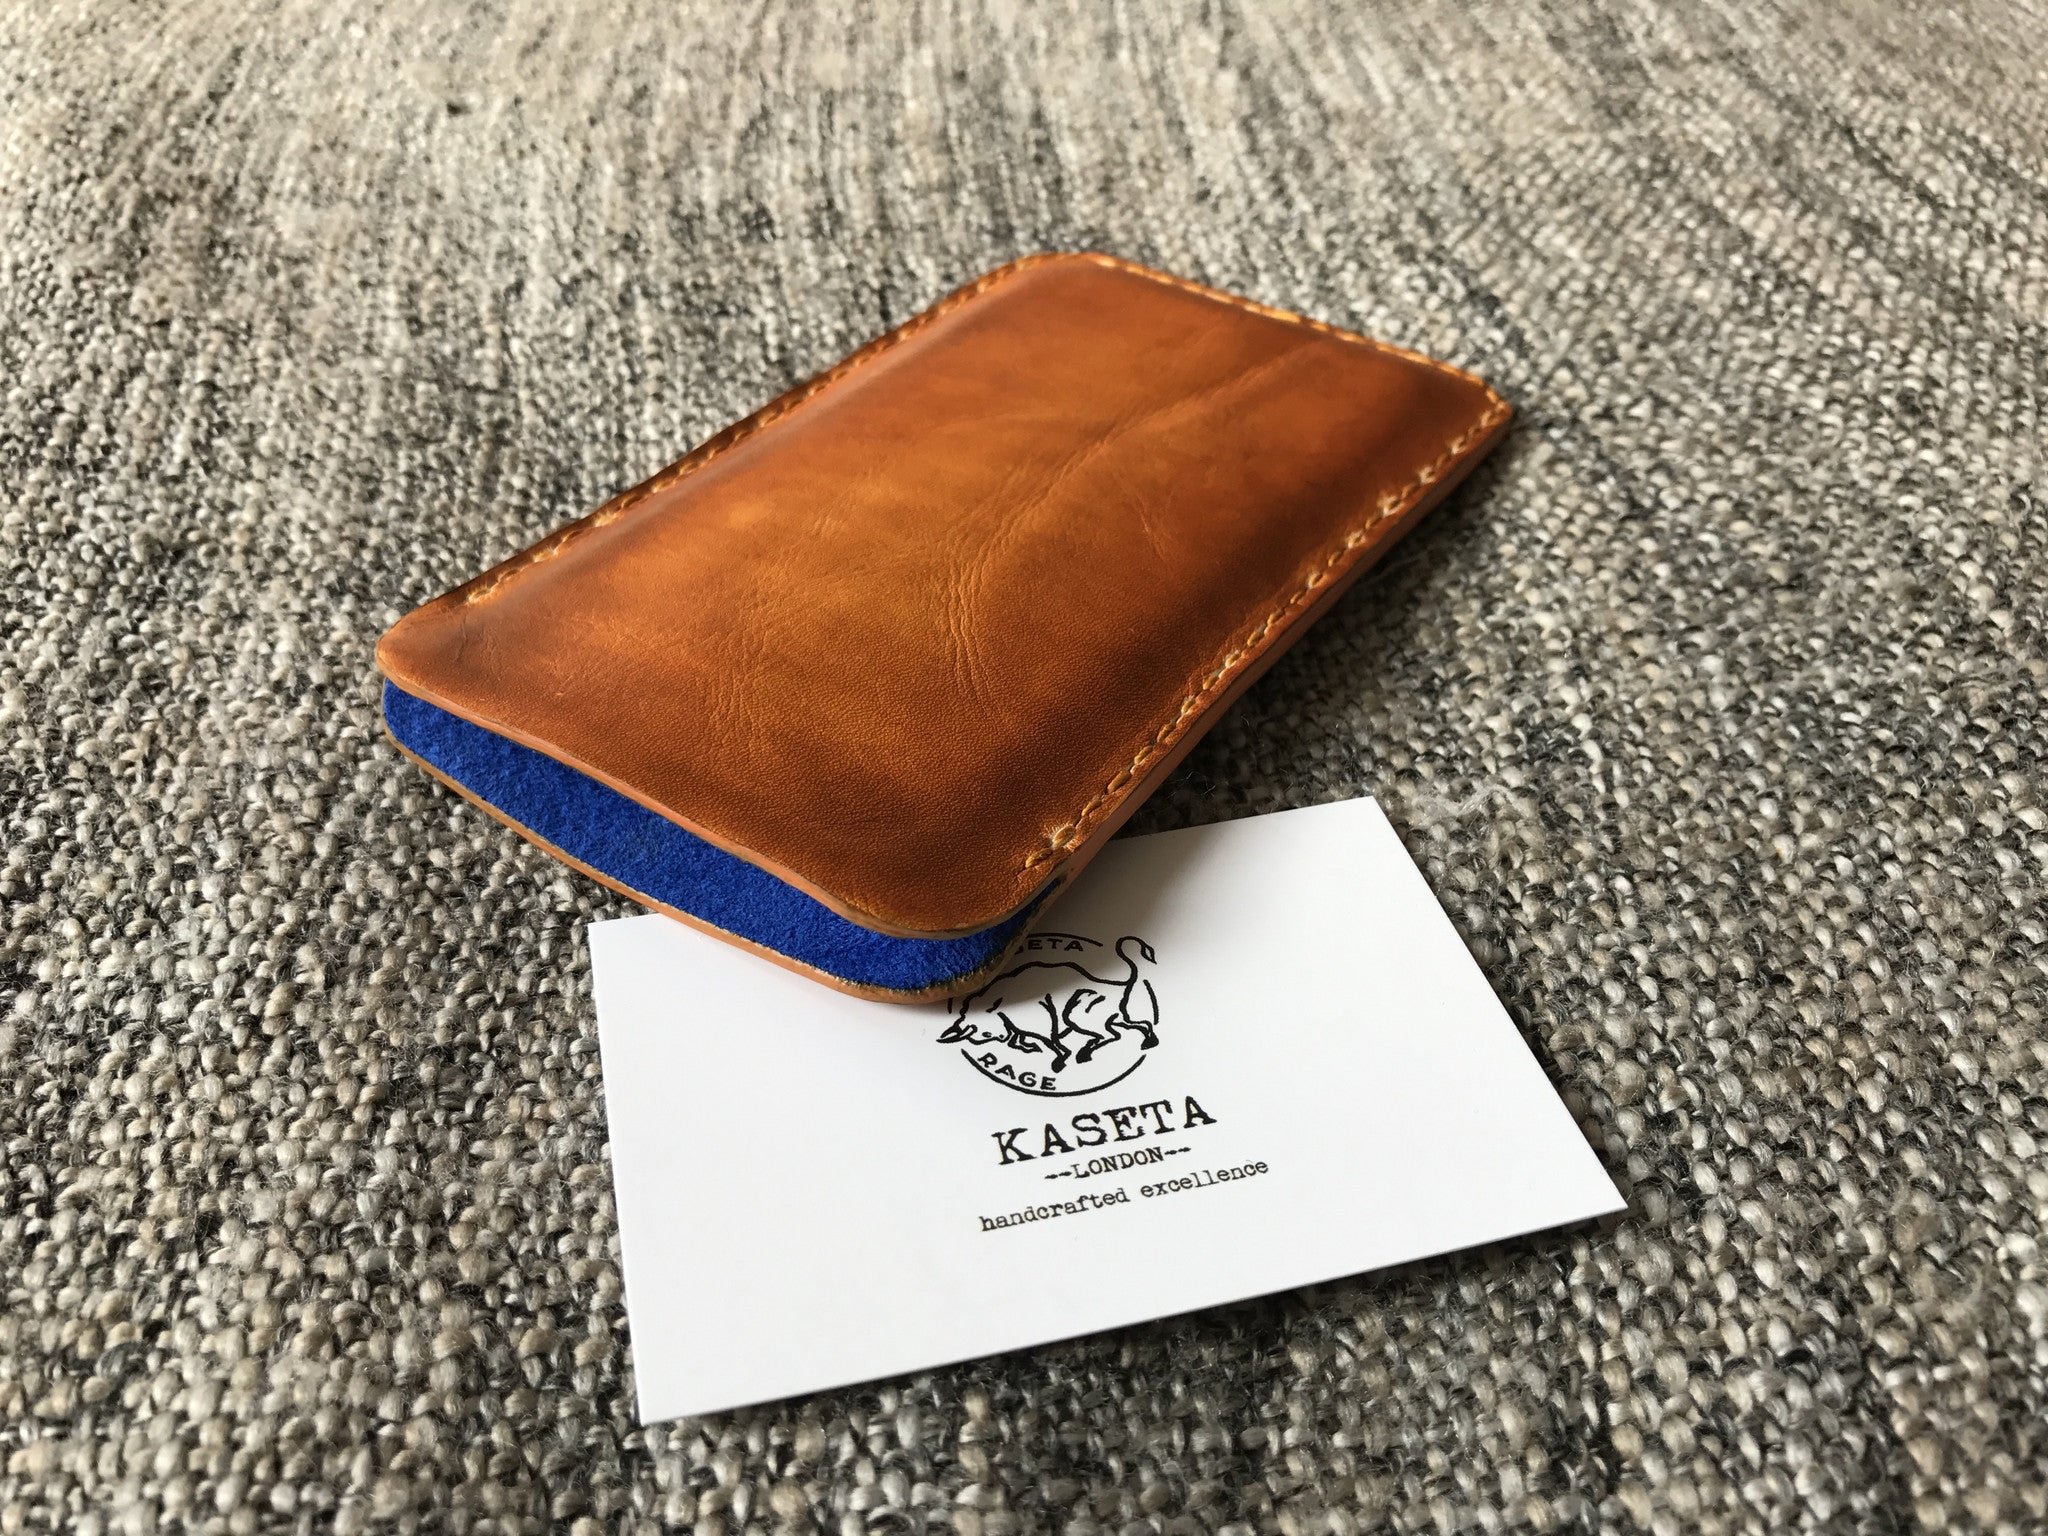 factory authentic 2d2e3 dca9e iPhone 8, 7, 6 Leather Sleeve, Leather pouch 'Old Tan' - Kaseta